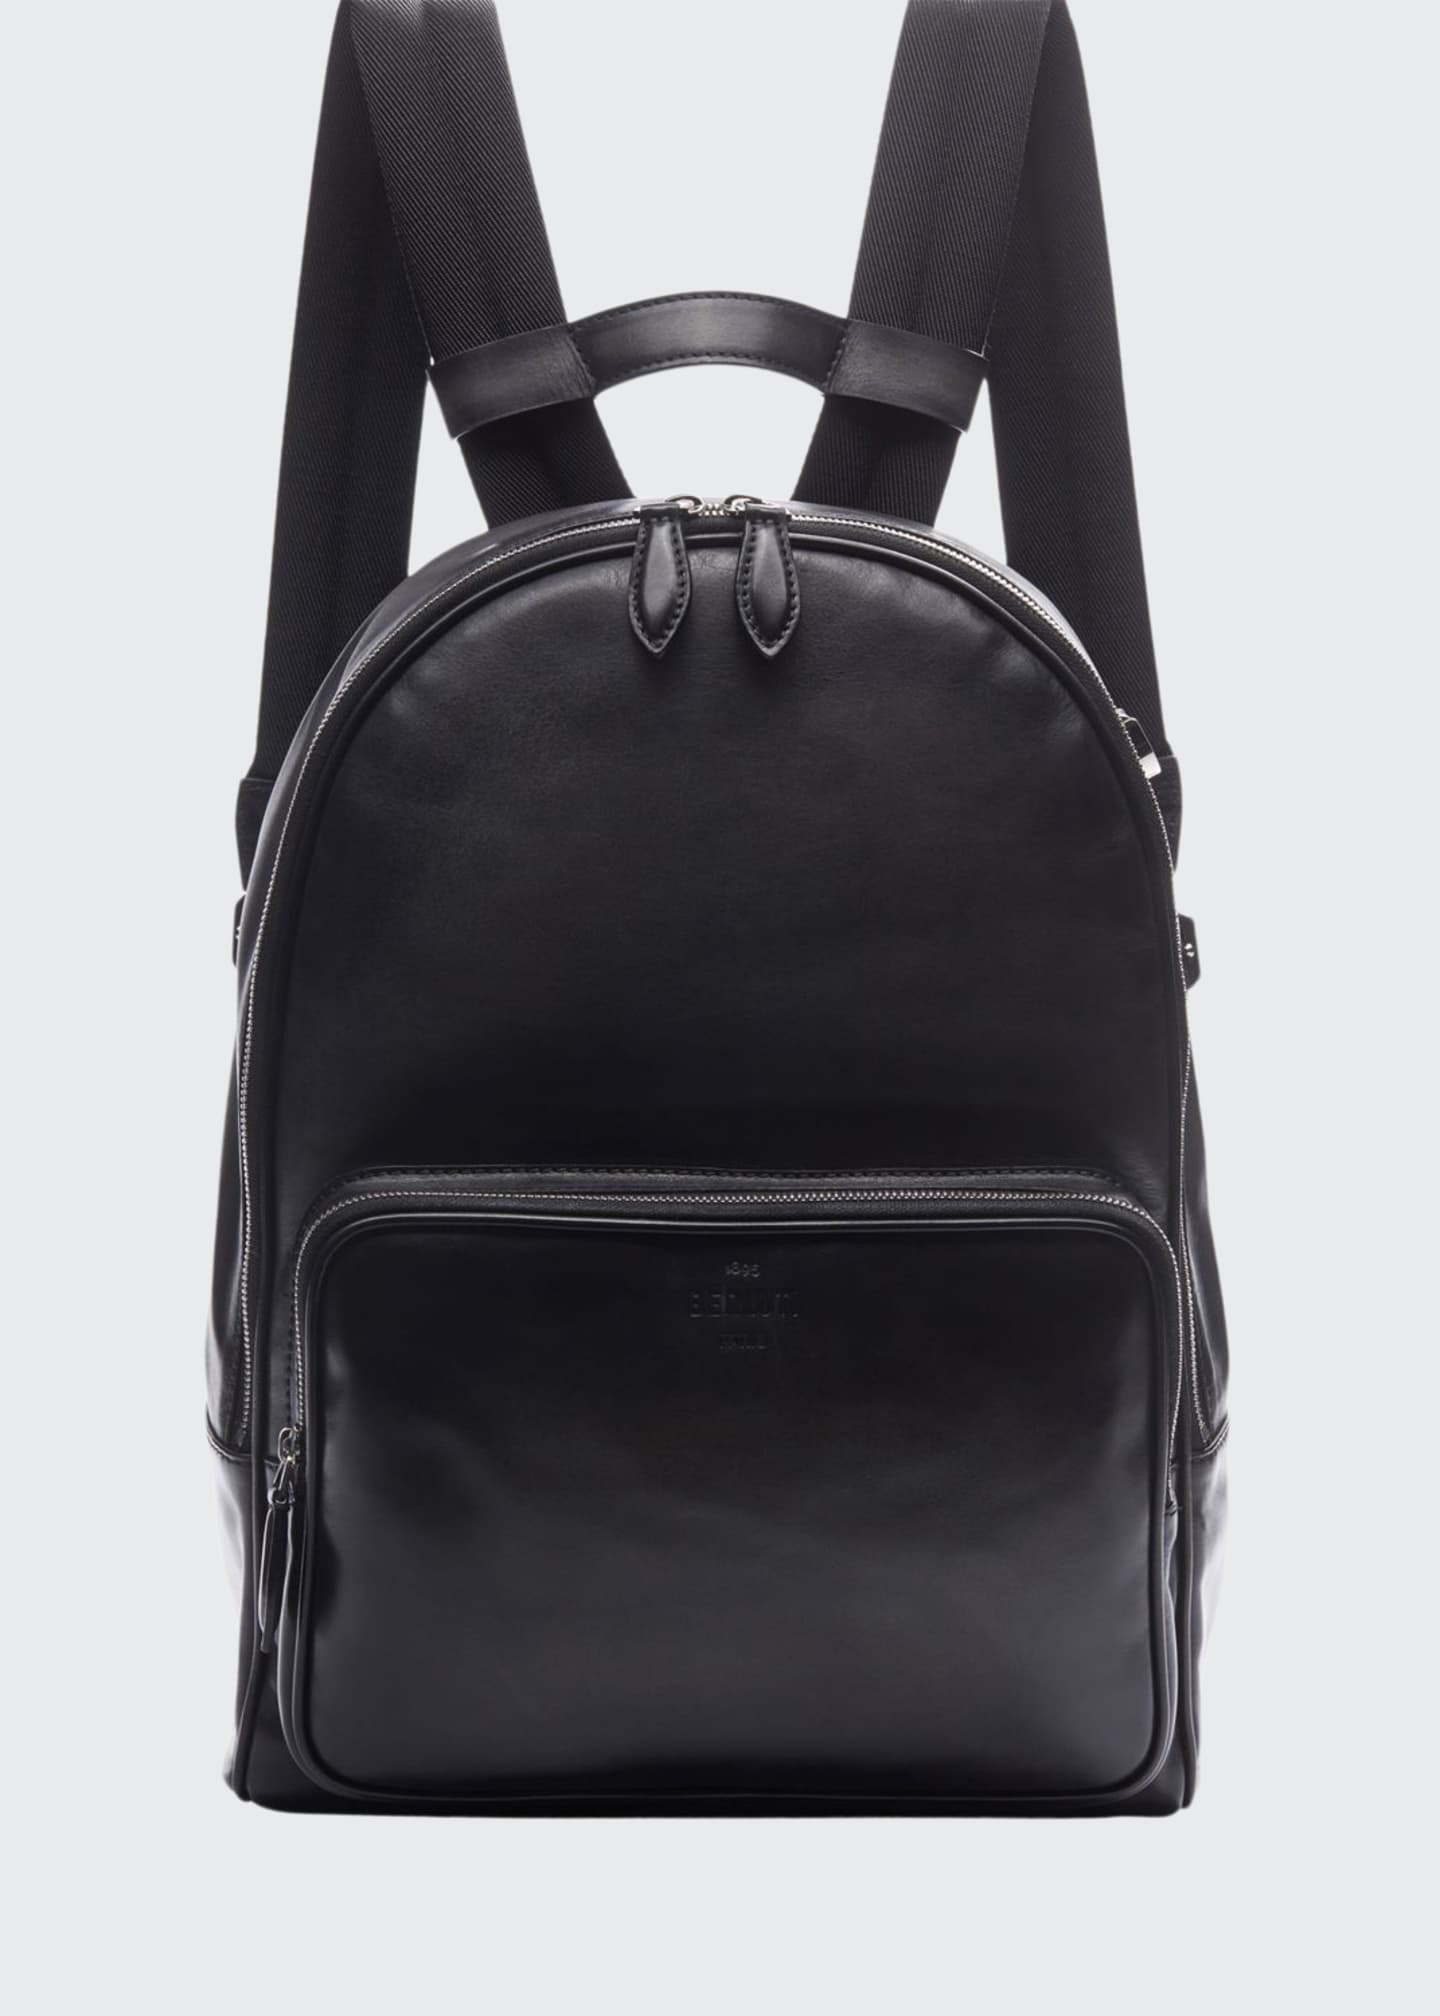 Image 1 of 3: Men's Time off Venezia Solid Leather Backpack